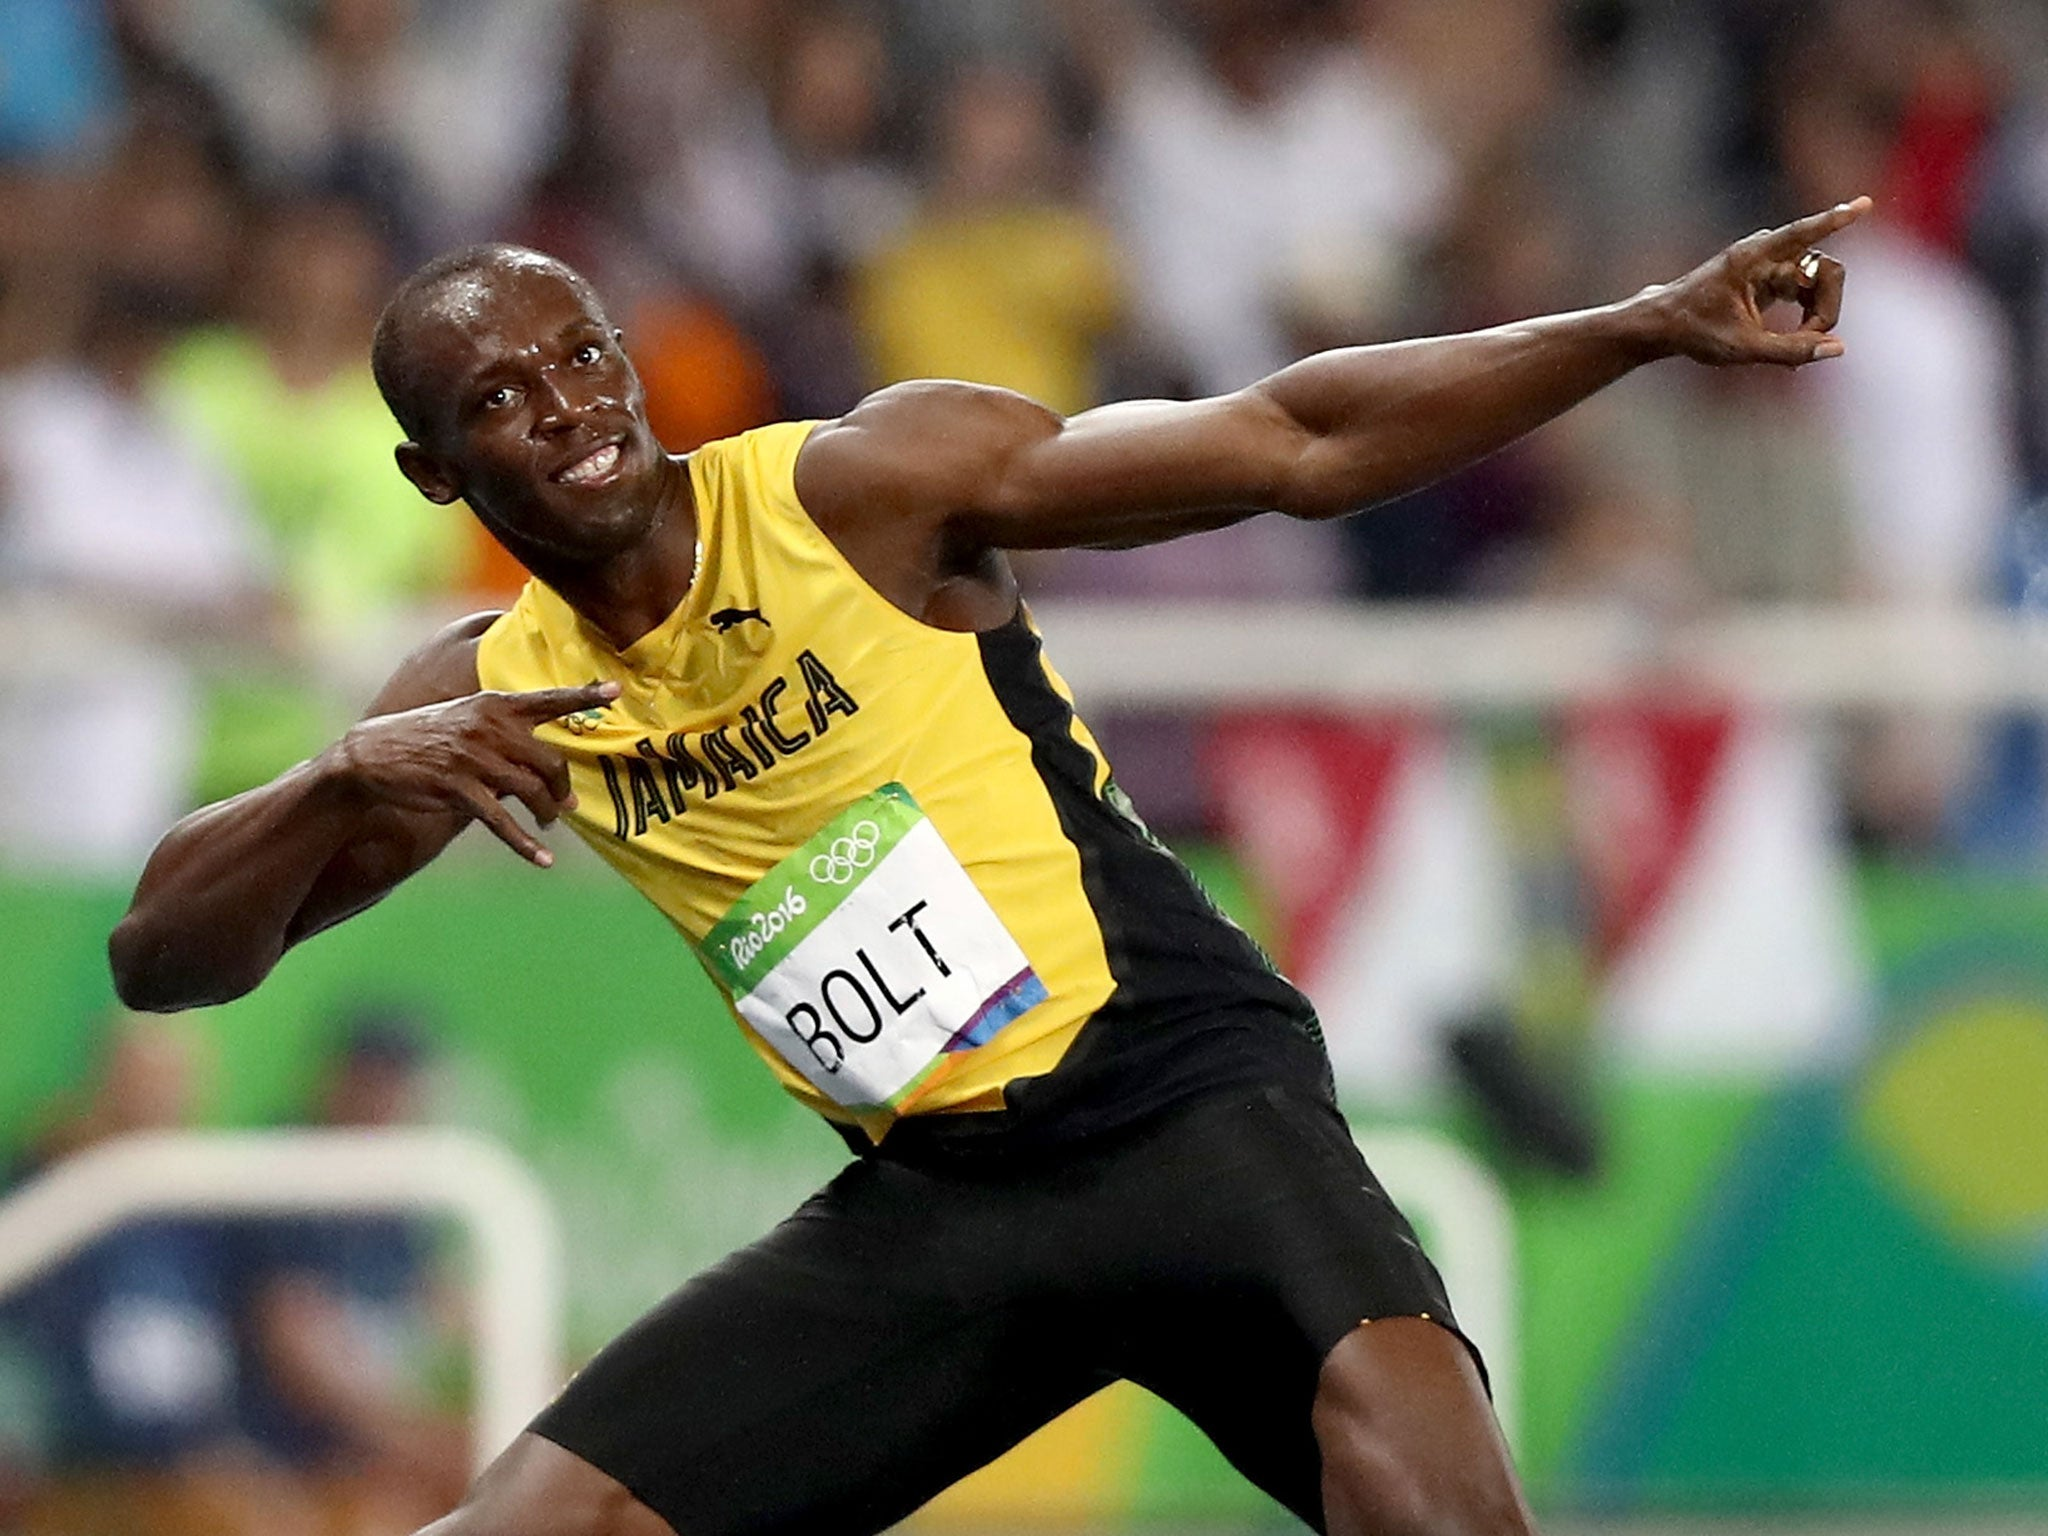 Rio 2016 Usain Bolt Angry After Missing Out On World Record